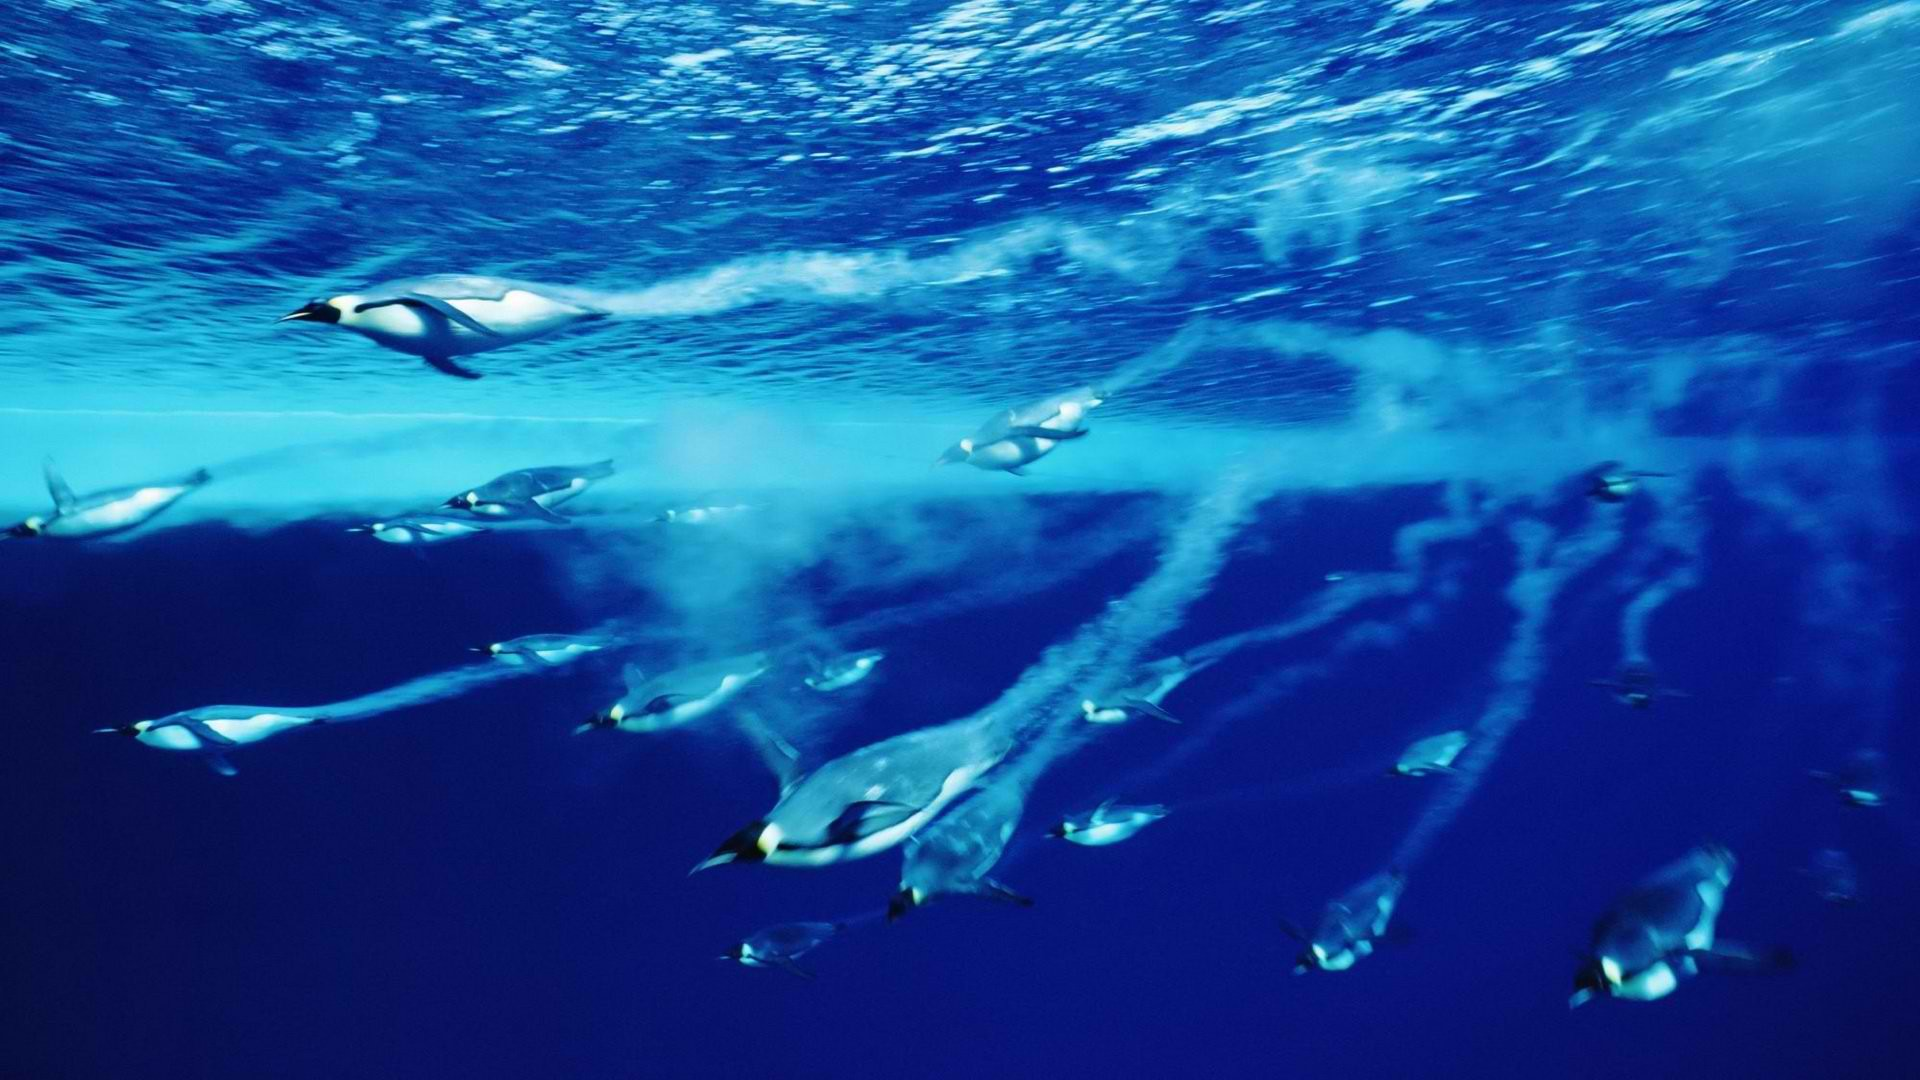 Diving Penguins Deep Blue Water Wallpaper   Wallpaper Stream 1920x1080